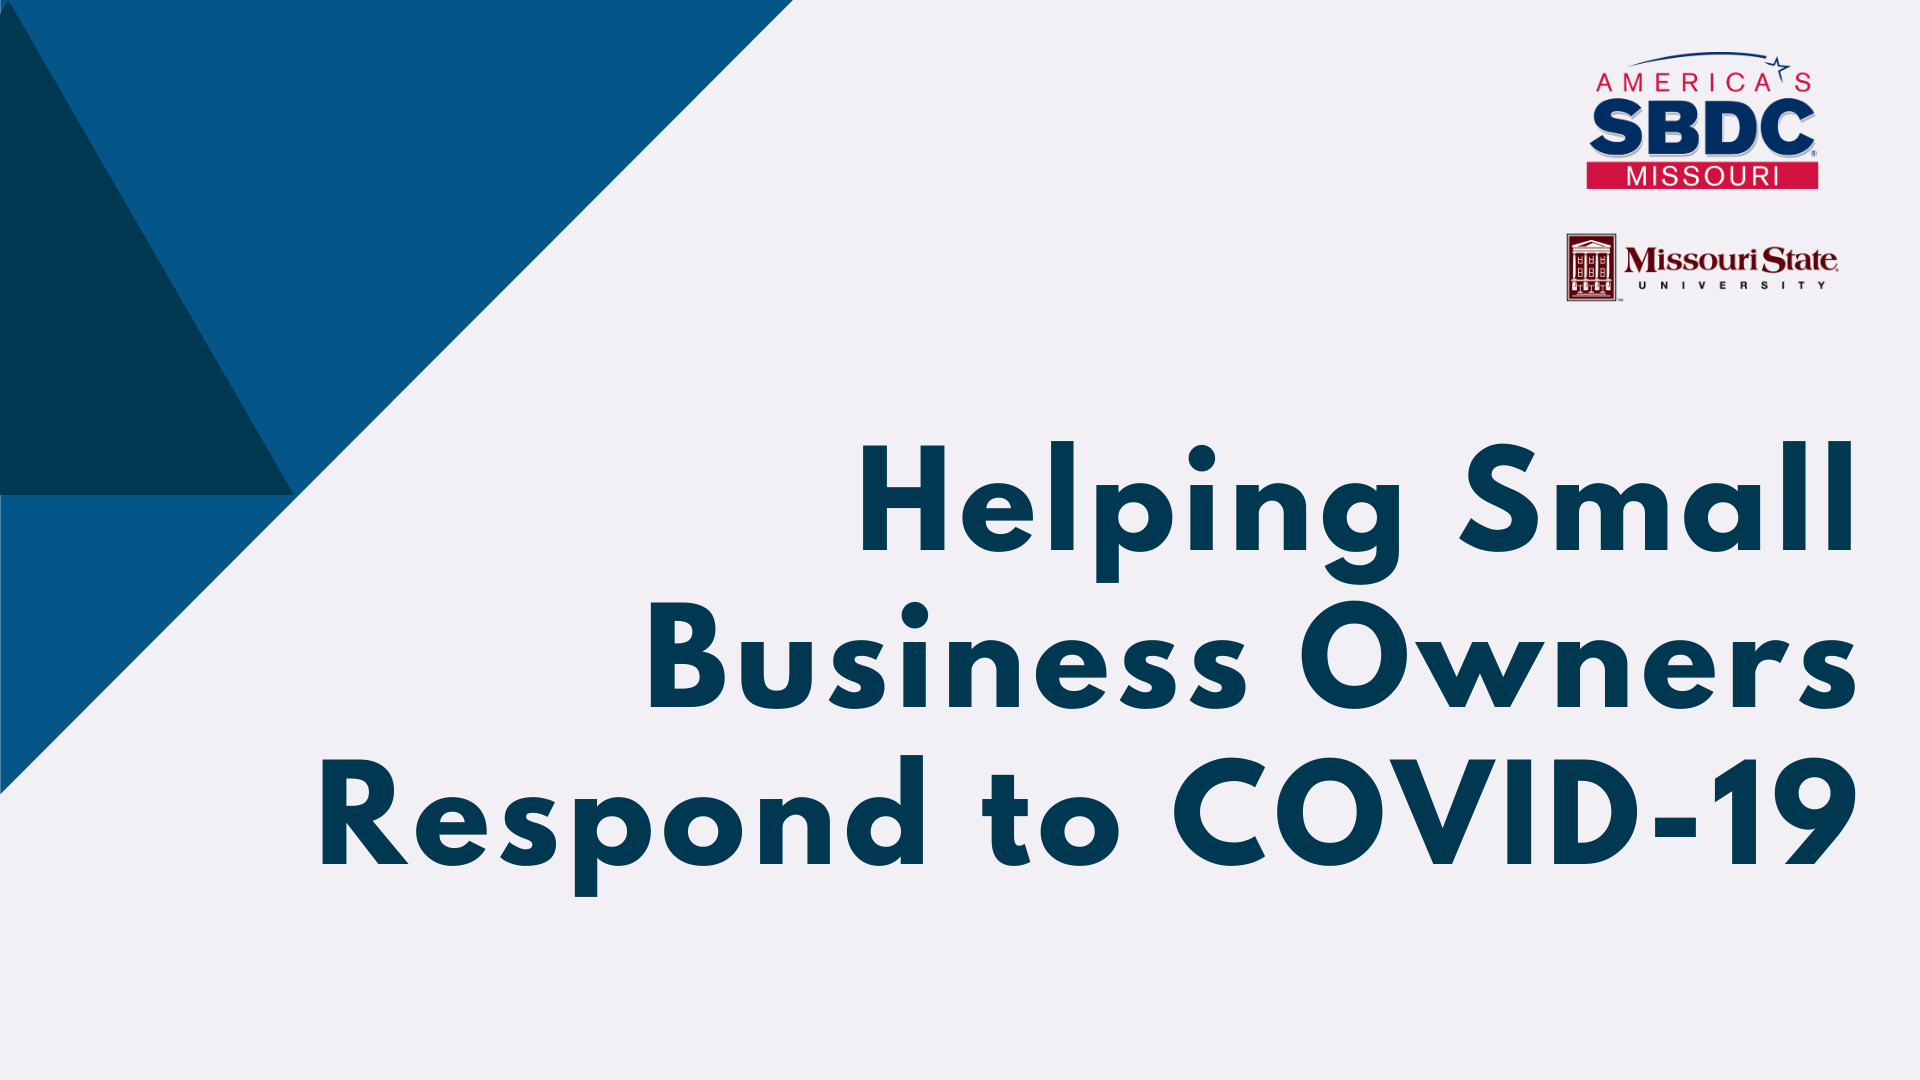 Helping Small Business Owners Respond to COVID-19